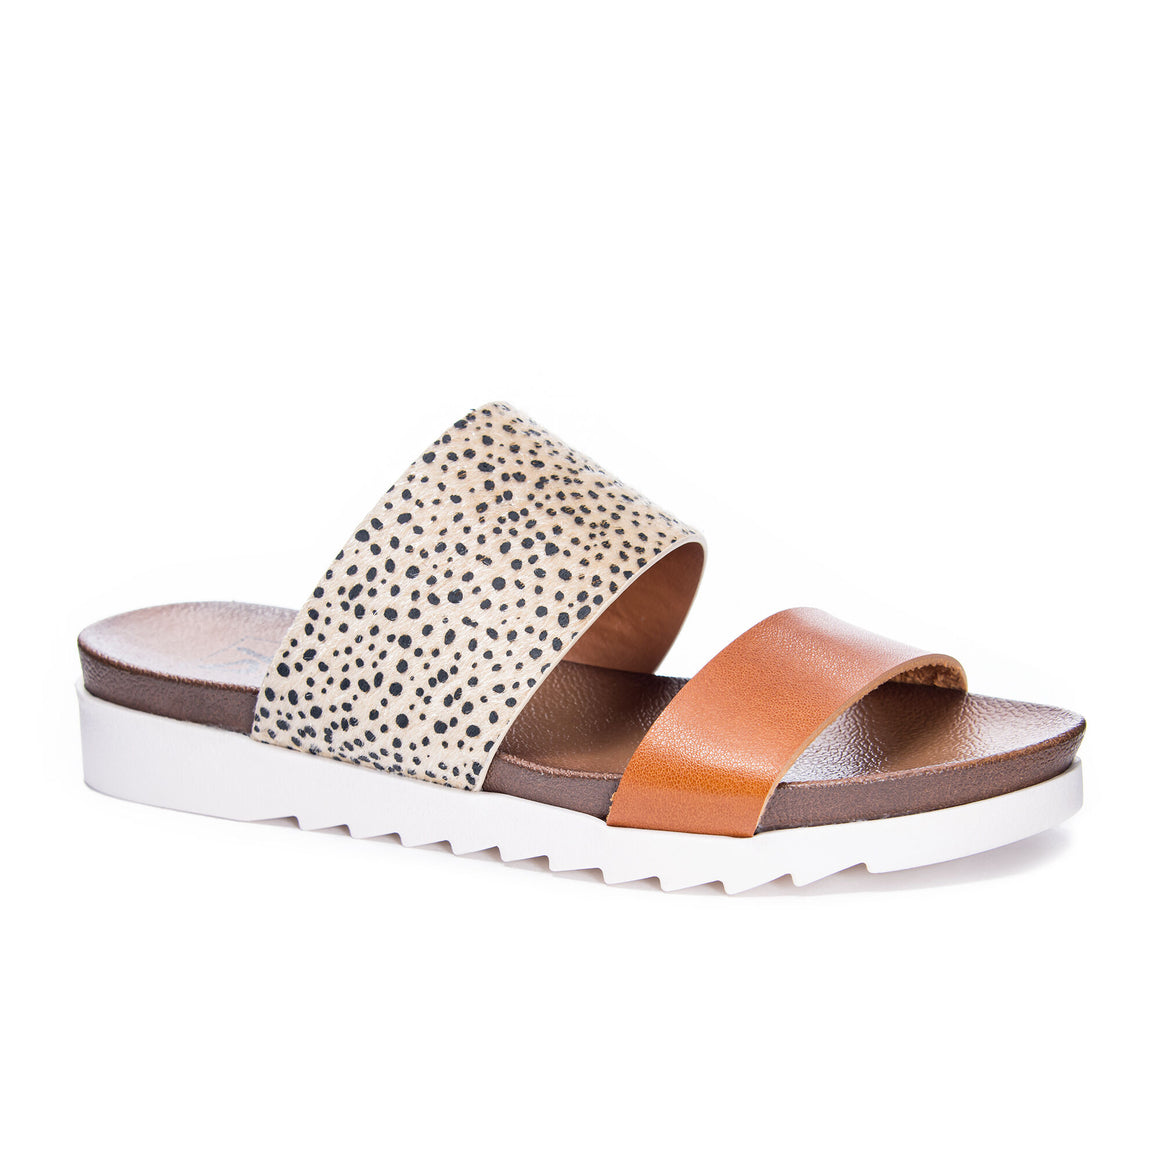 Dirty Laundry Women's Coastline Cheetah Sandal - Tan